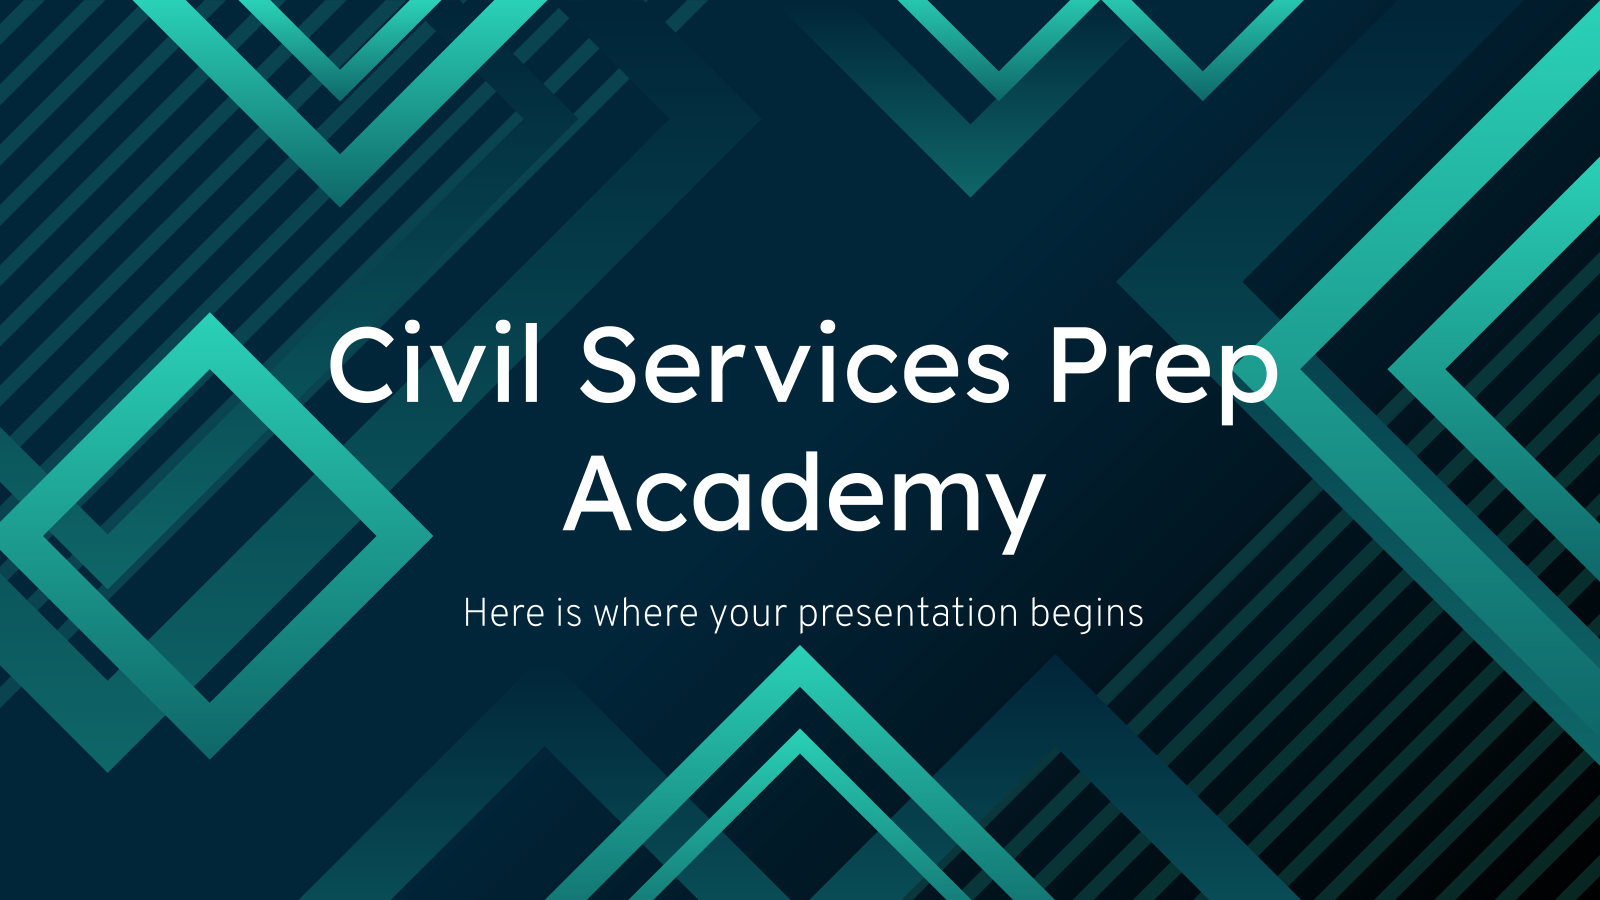 Civil Services Prep Academy presentation template